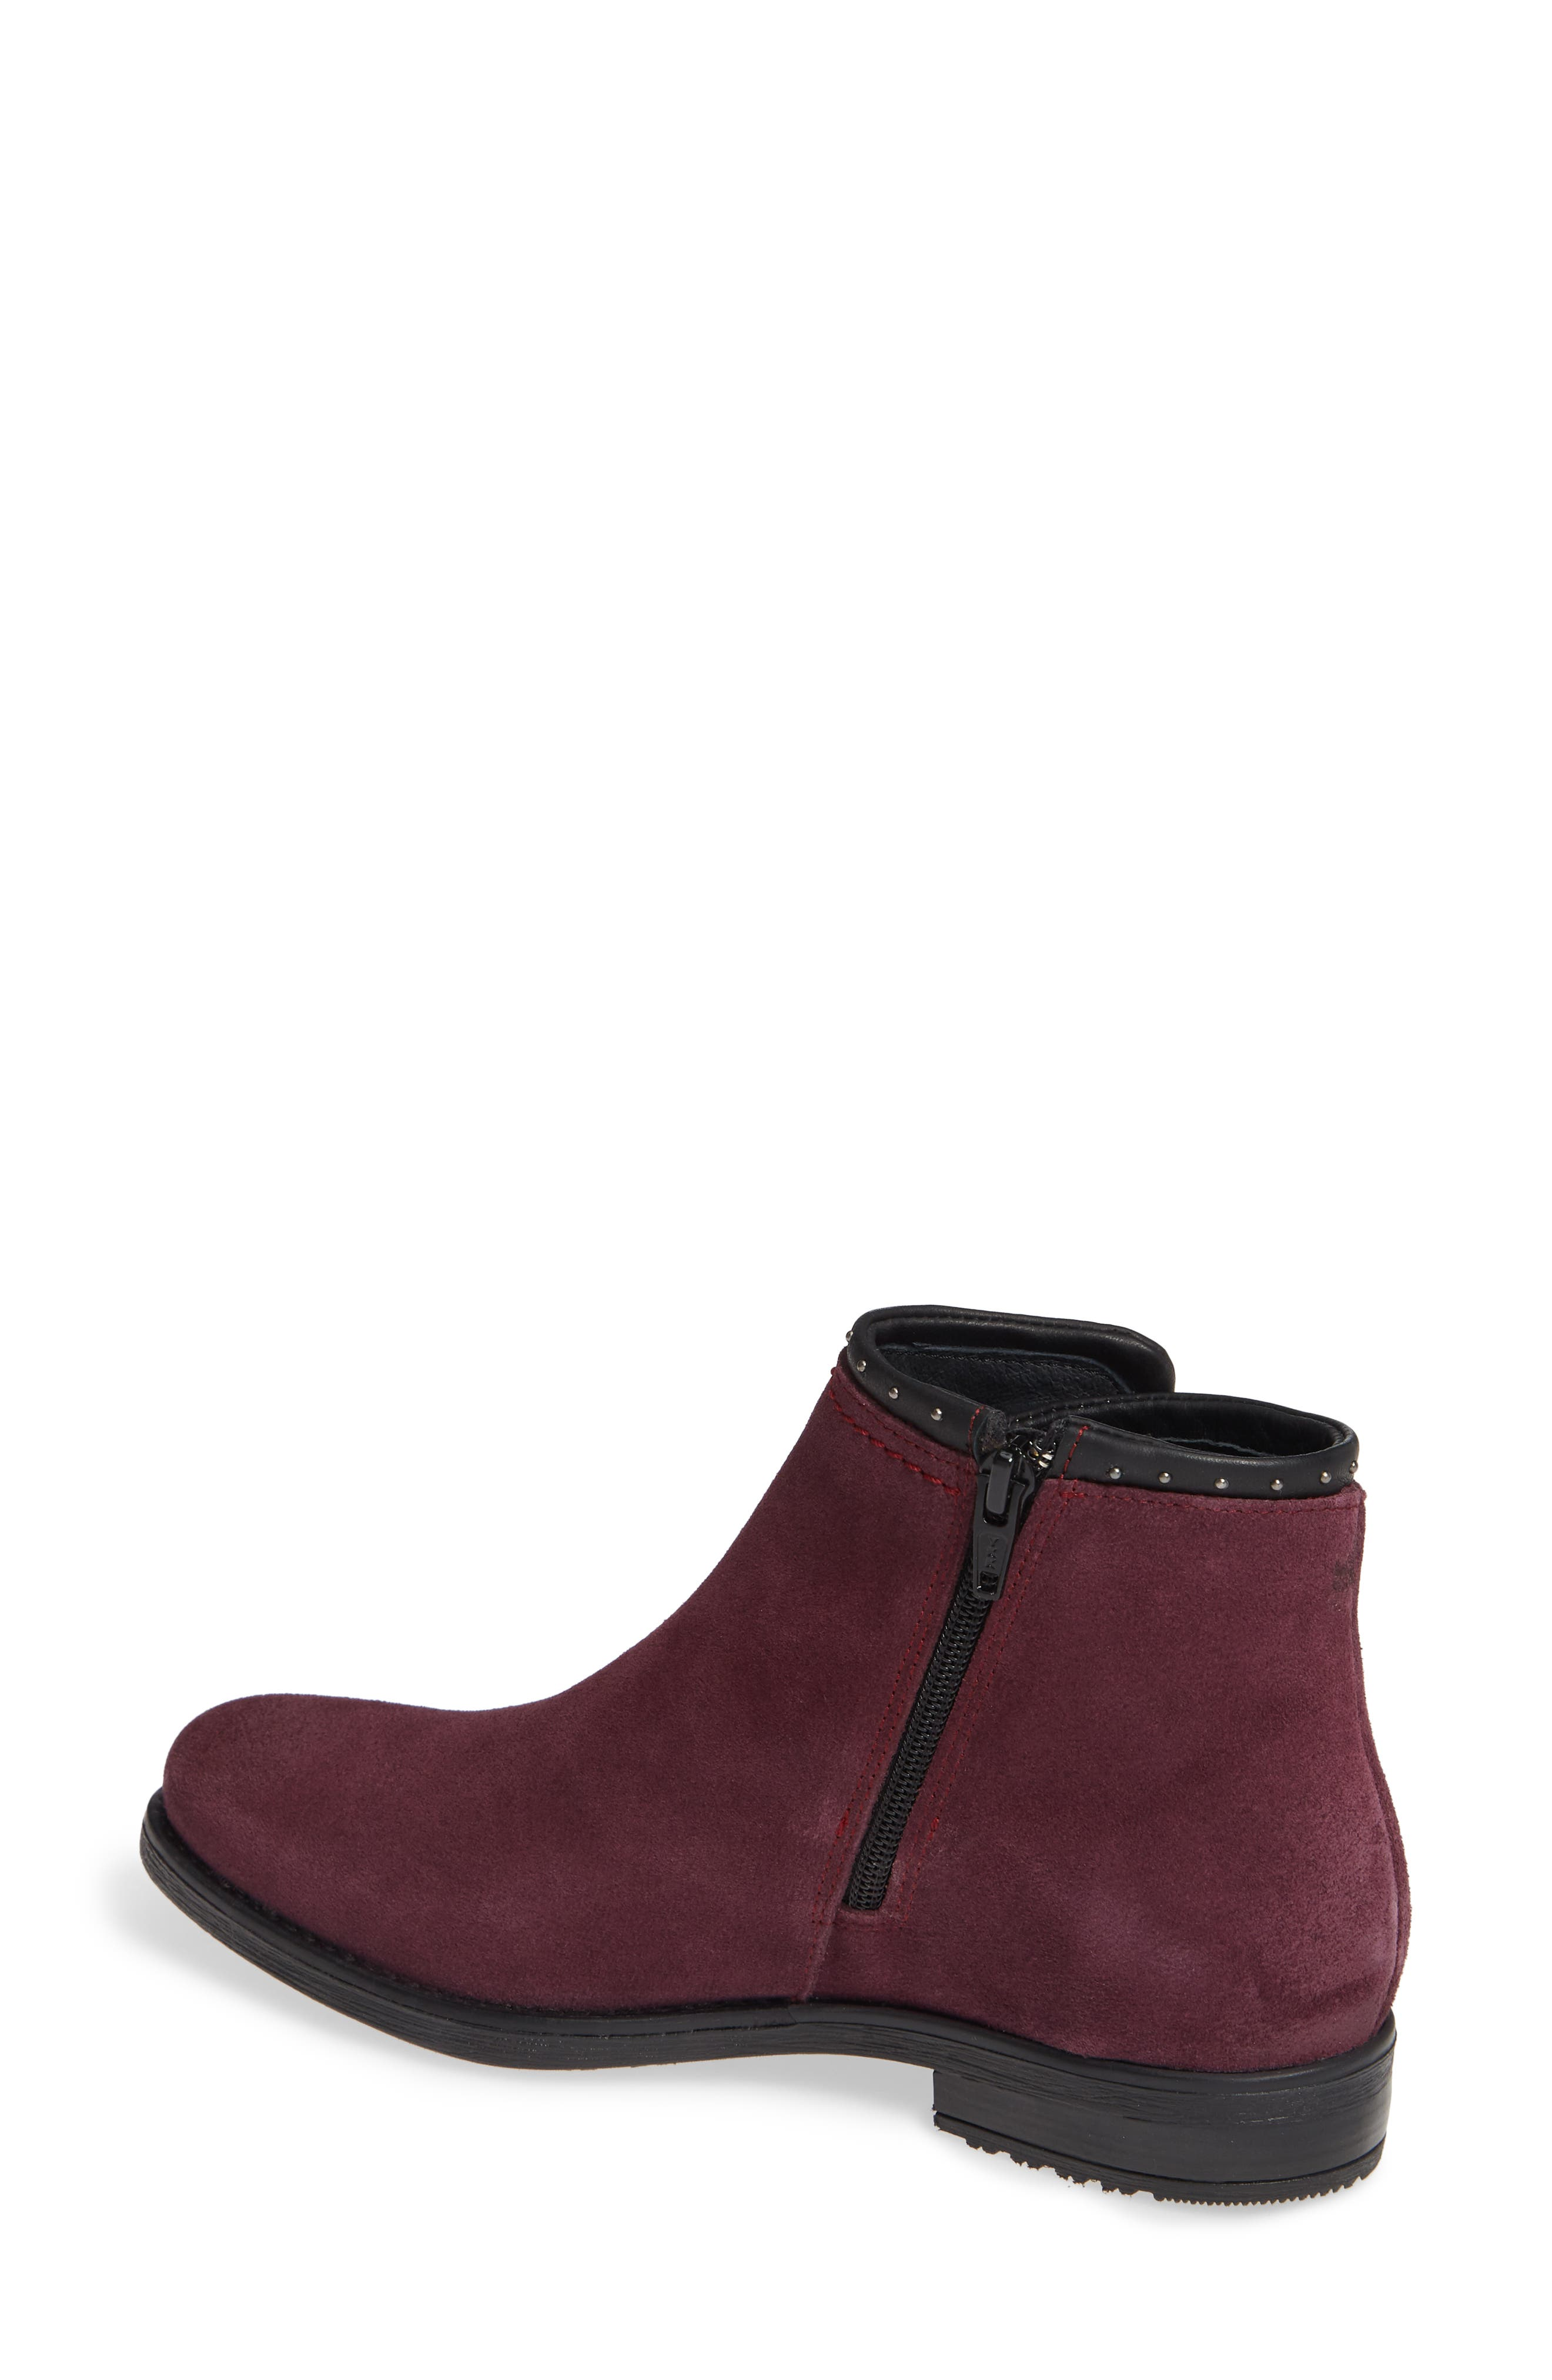 BOS. & CO., Ribos Bootie, Alternate thumbnail 2, color, PRUNE SUEDE